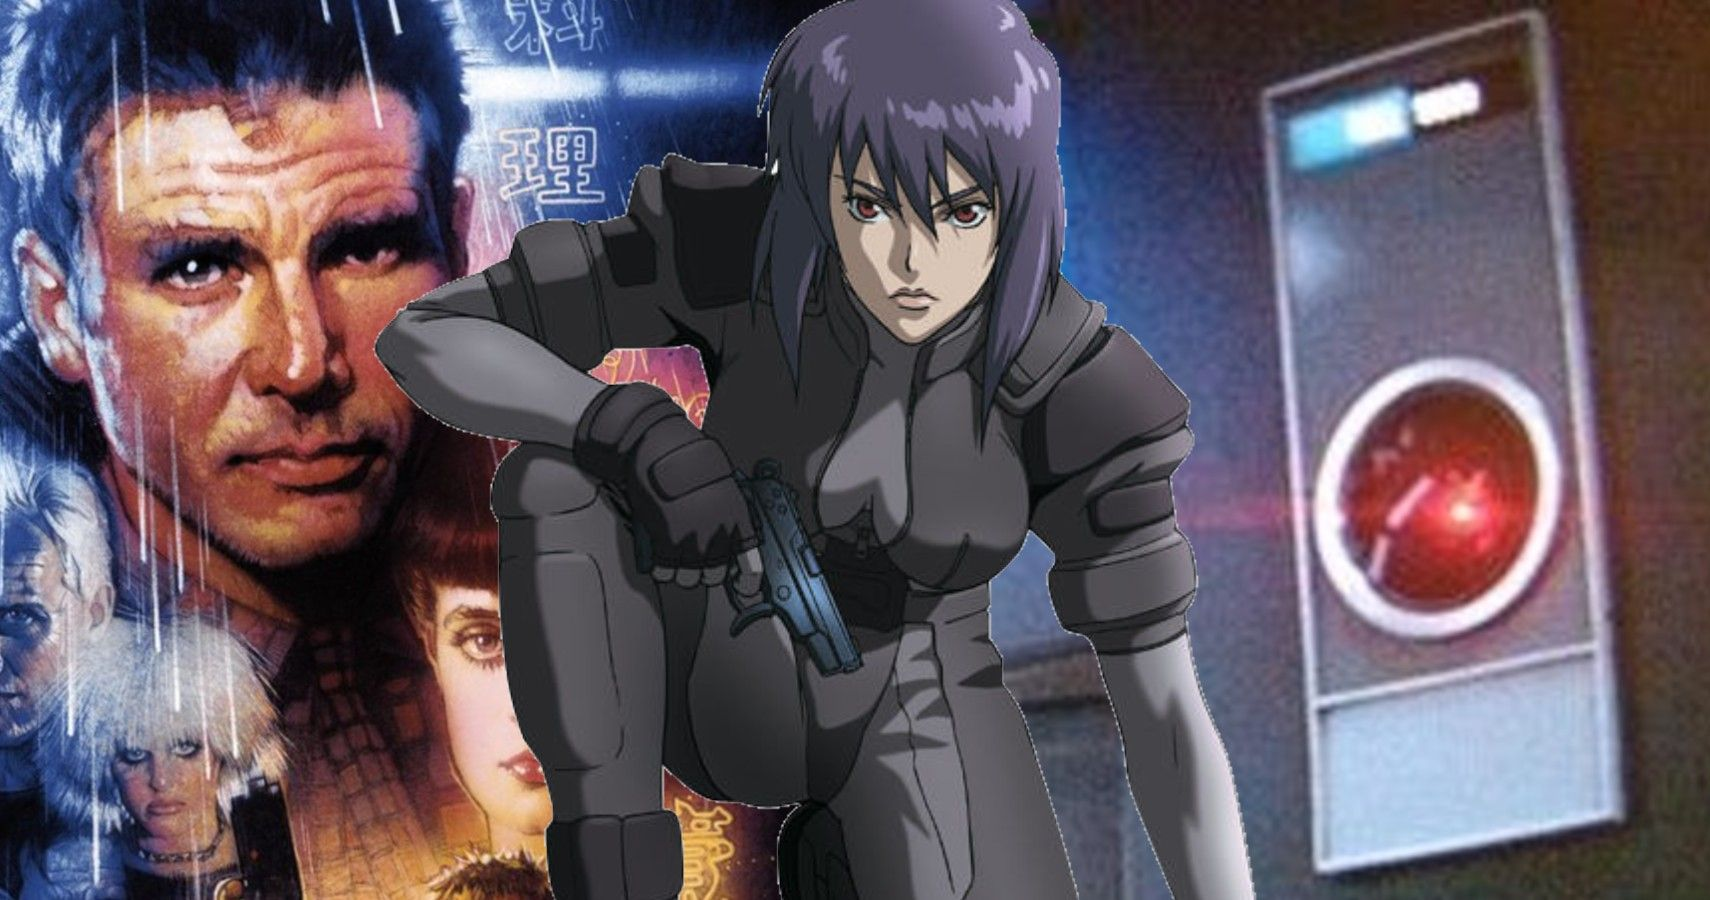 Ghost In The Shell 10 Hidden References To Other Sci Fi Stories Made In The Movies Series